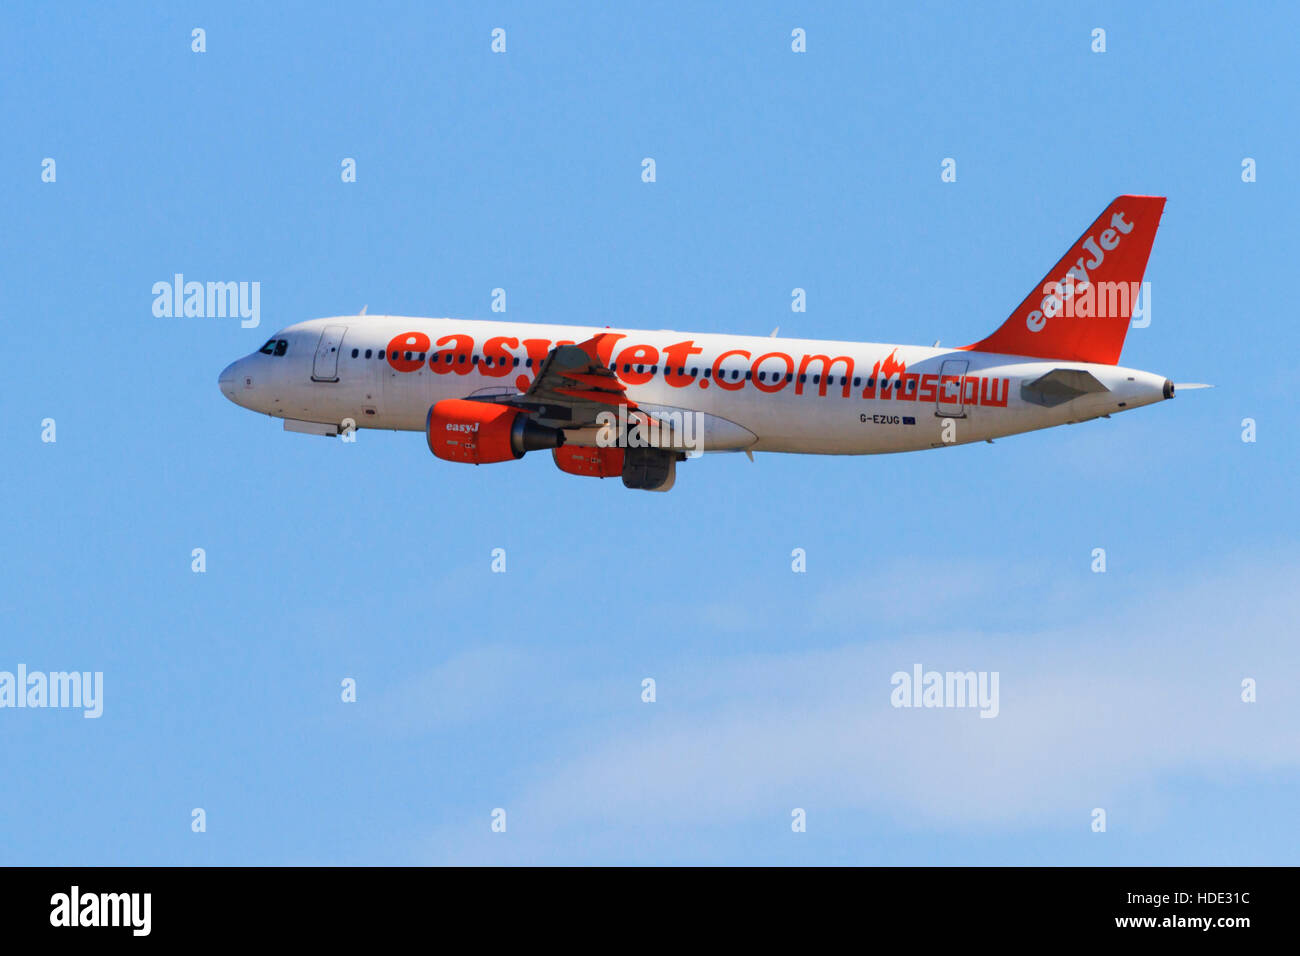 Airbus A320-214 of Easyjet in Moscow livery. - Stock Image